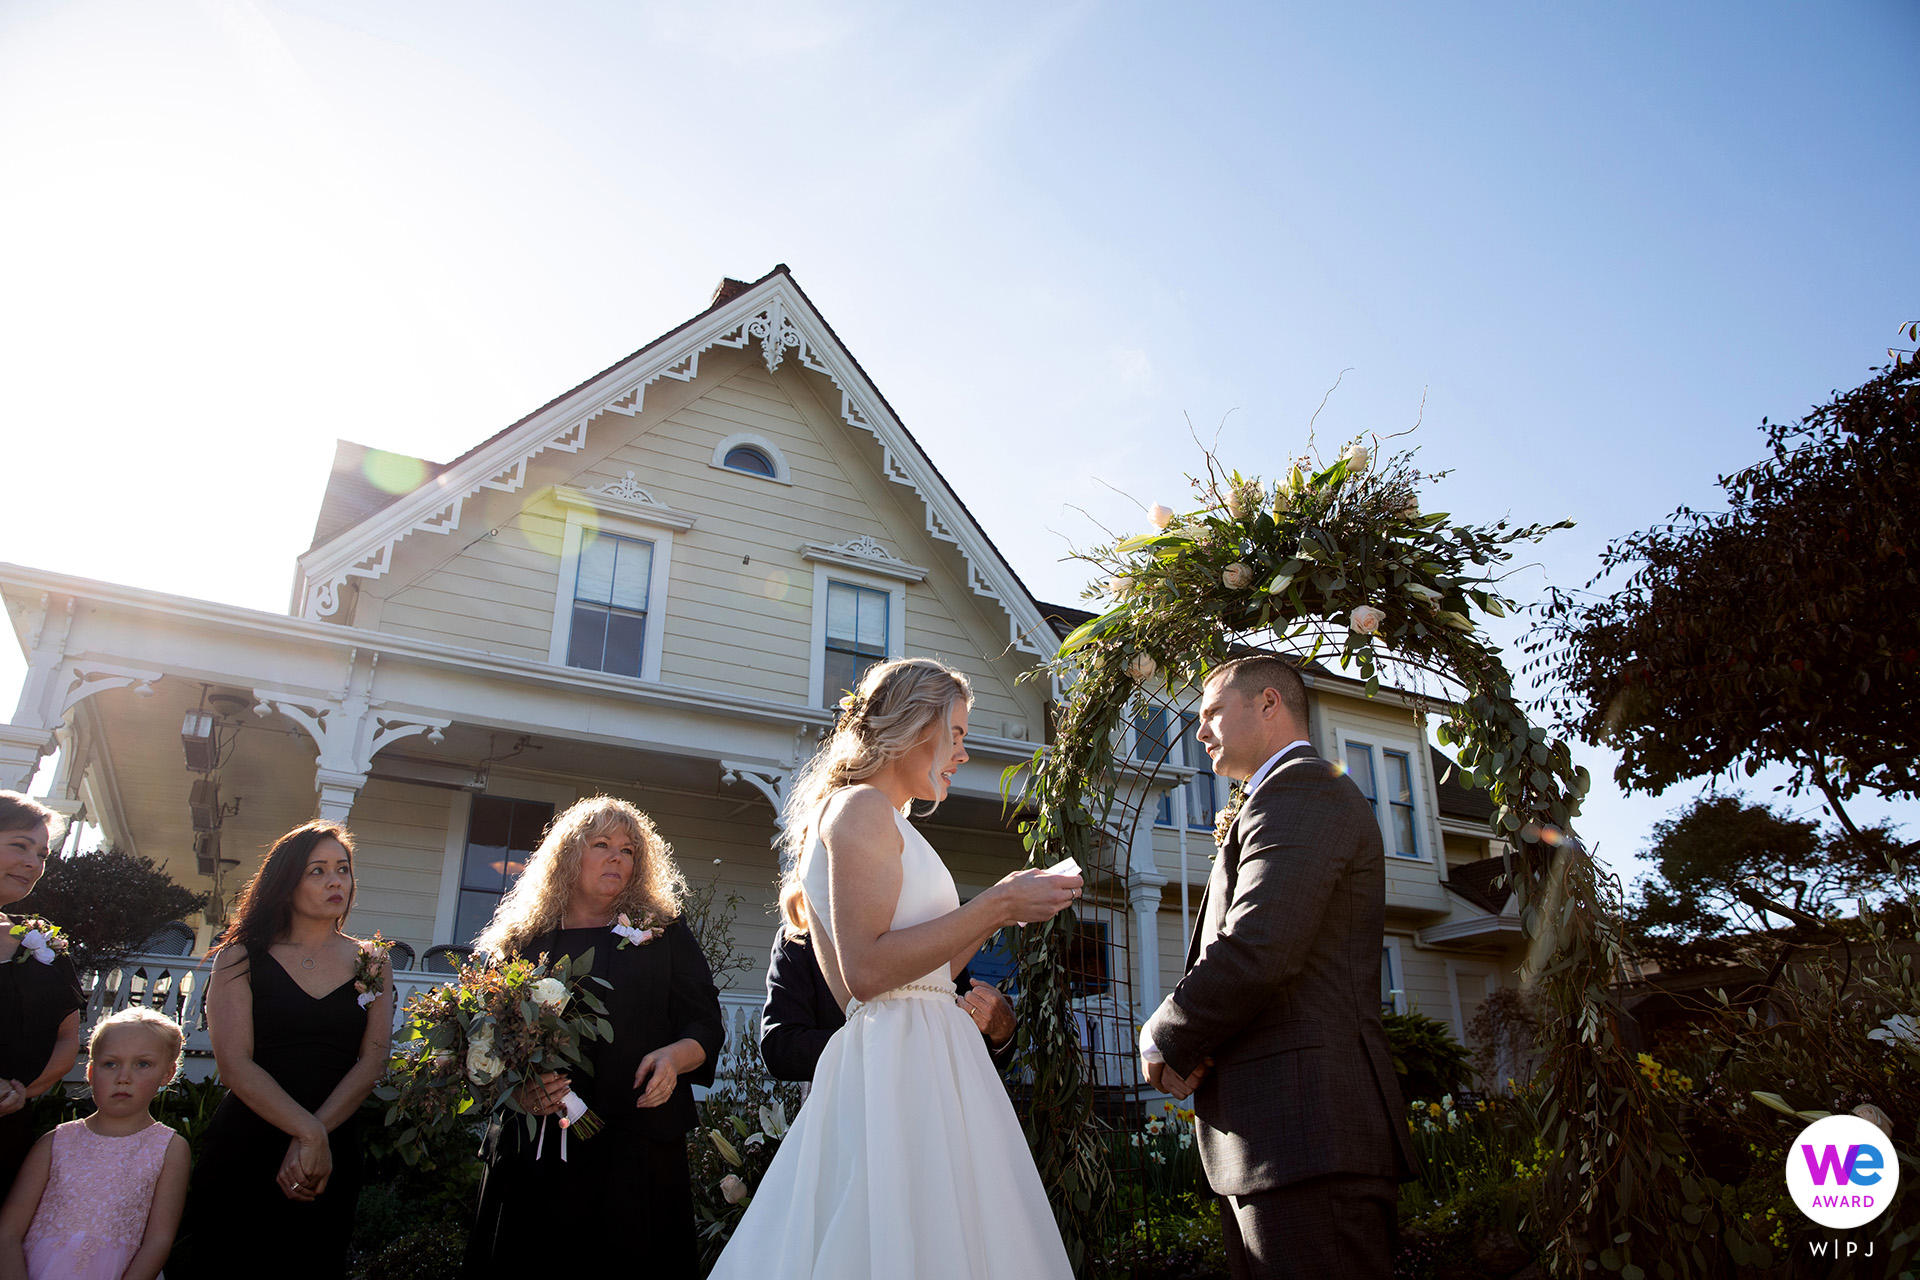 MacCallum House Inn, Mendocino, CA Elopement Photography | The wedding ceremony took place on the MacCallum House lawn followed by a reception in the dining room